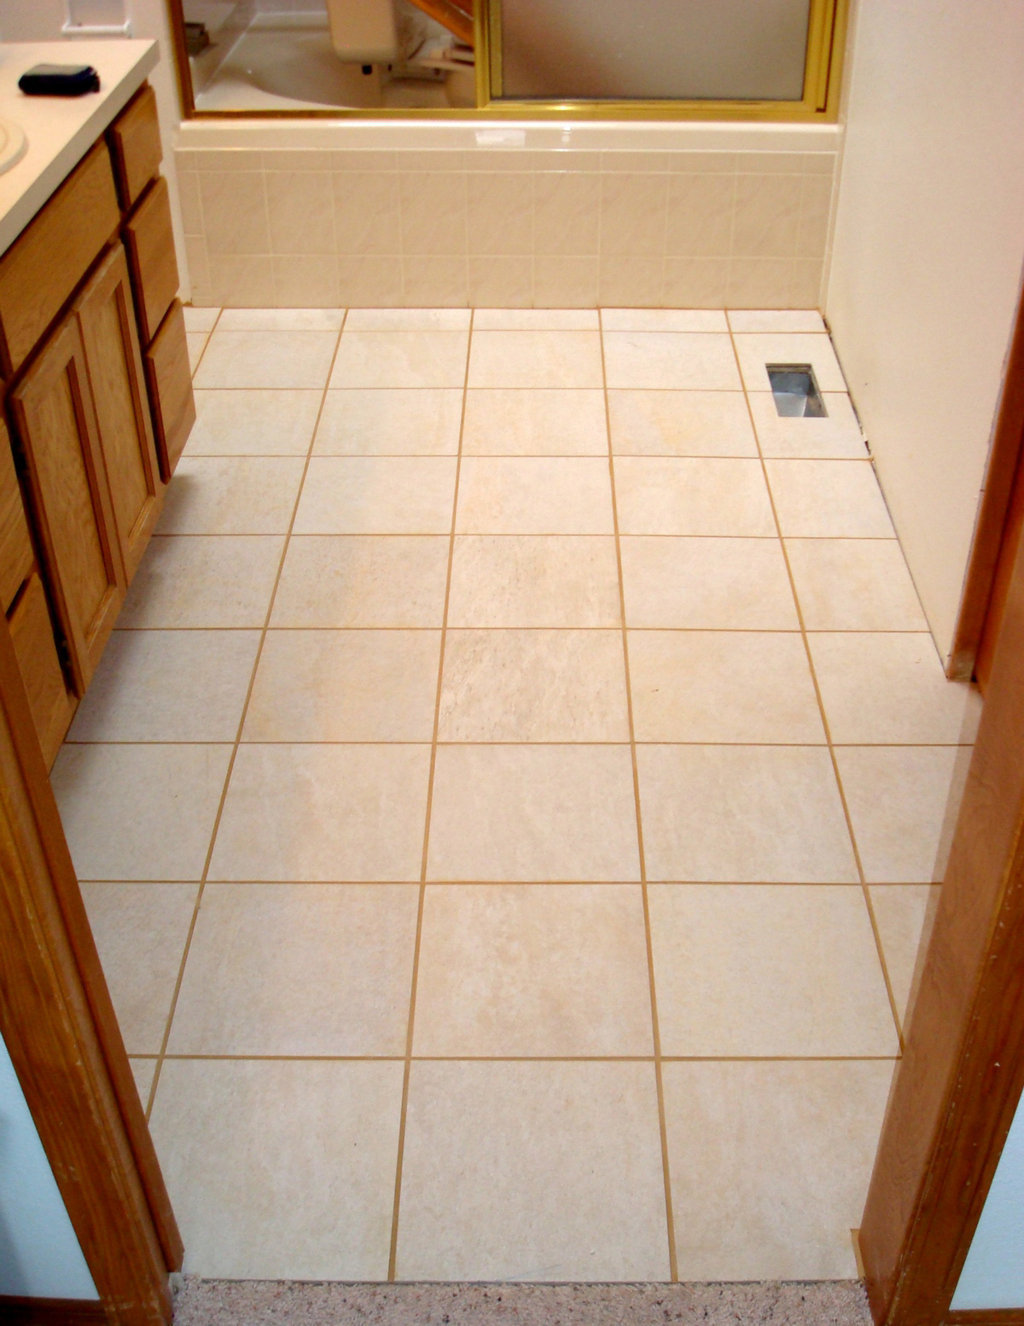 Ceramic tile flooring for your homes tiles flooring stair for your home improvement Ceramic tile flooring installation